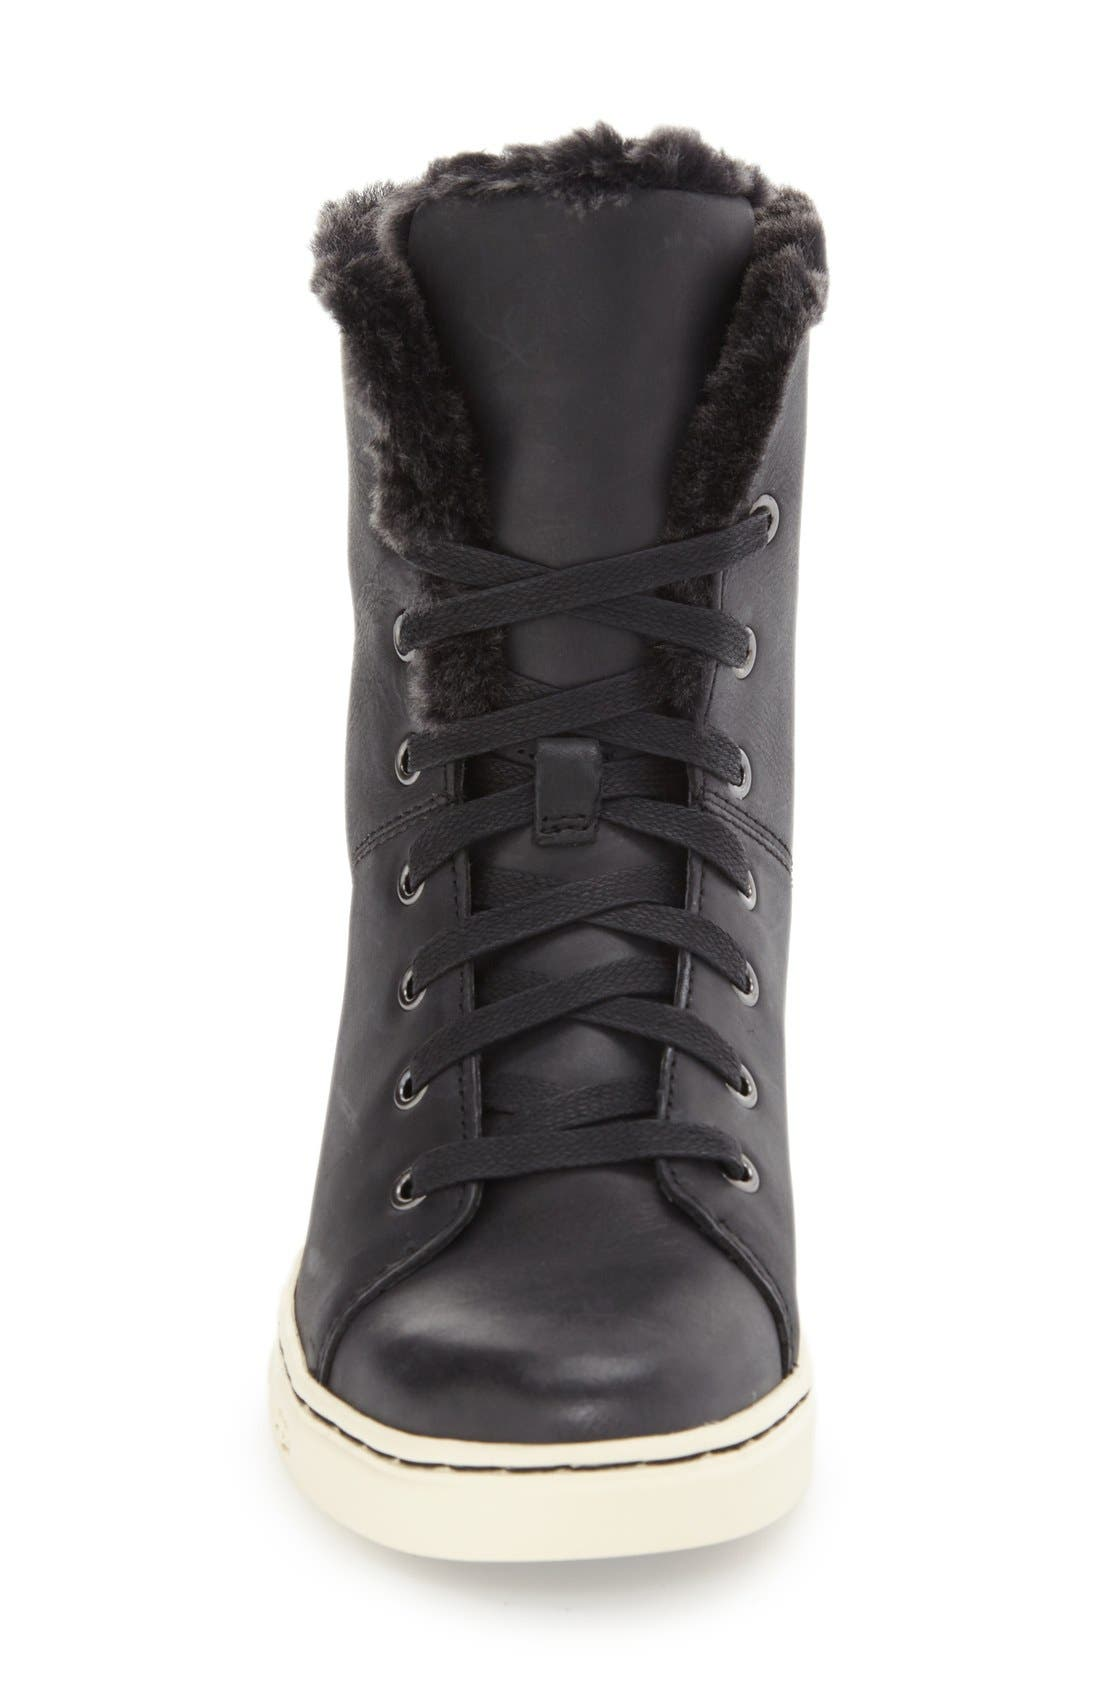 'Croft Luxe' Genuine Shearling High Top Sneaker,                             Alternate thumbnail 2, color,                             001